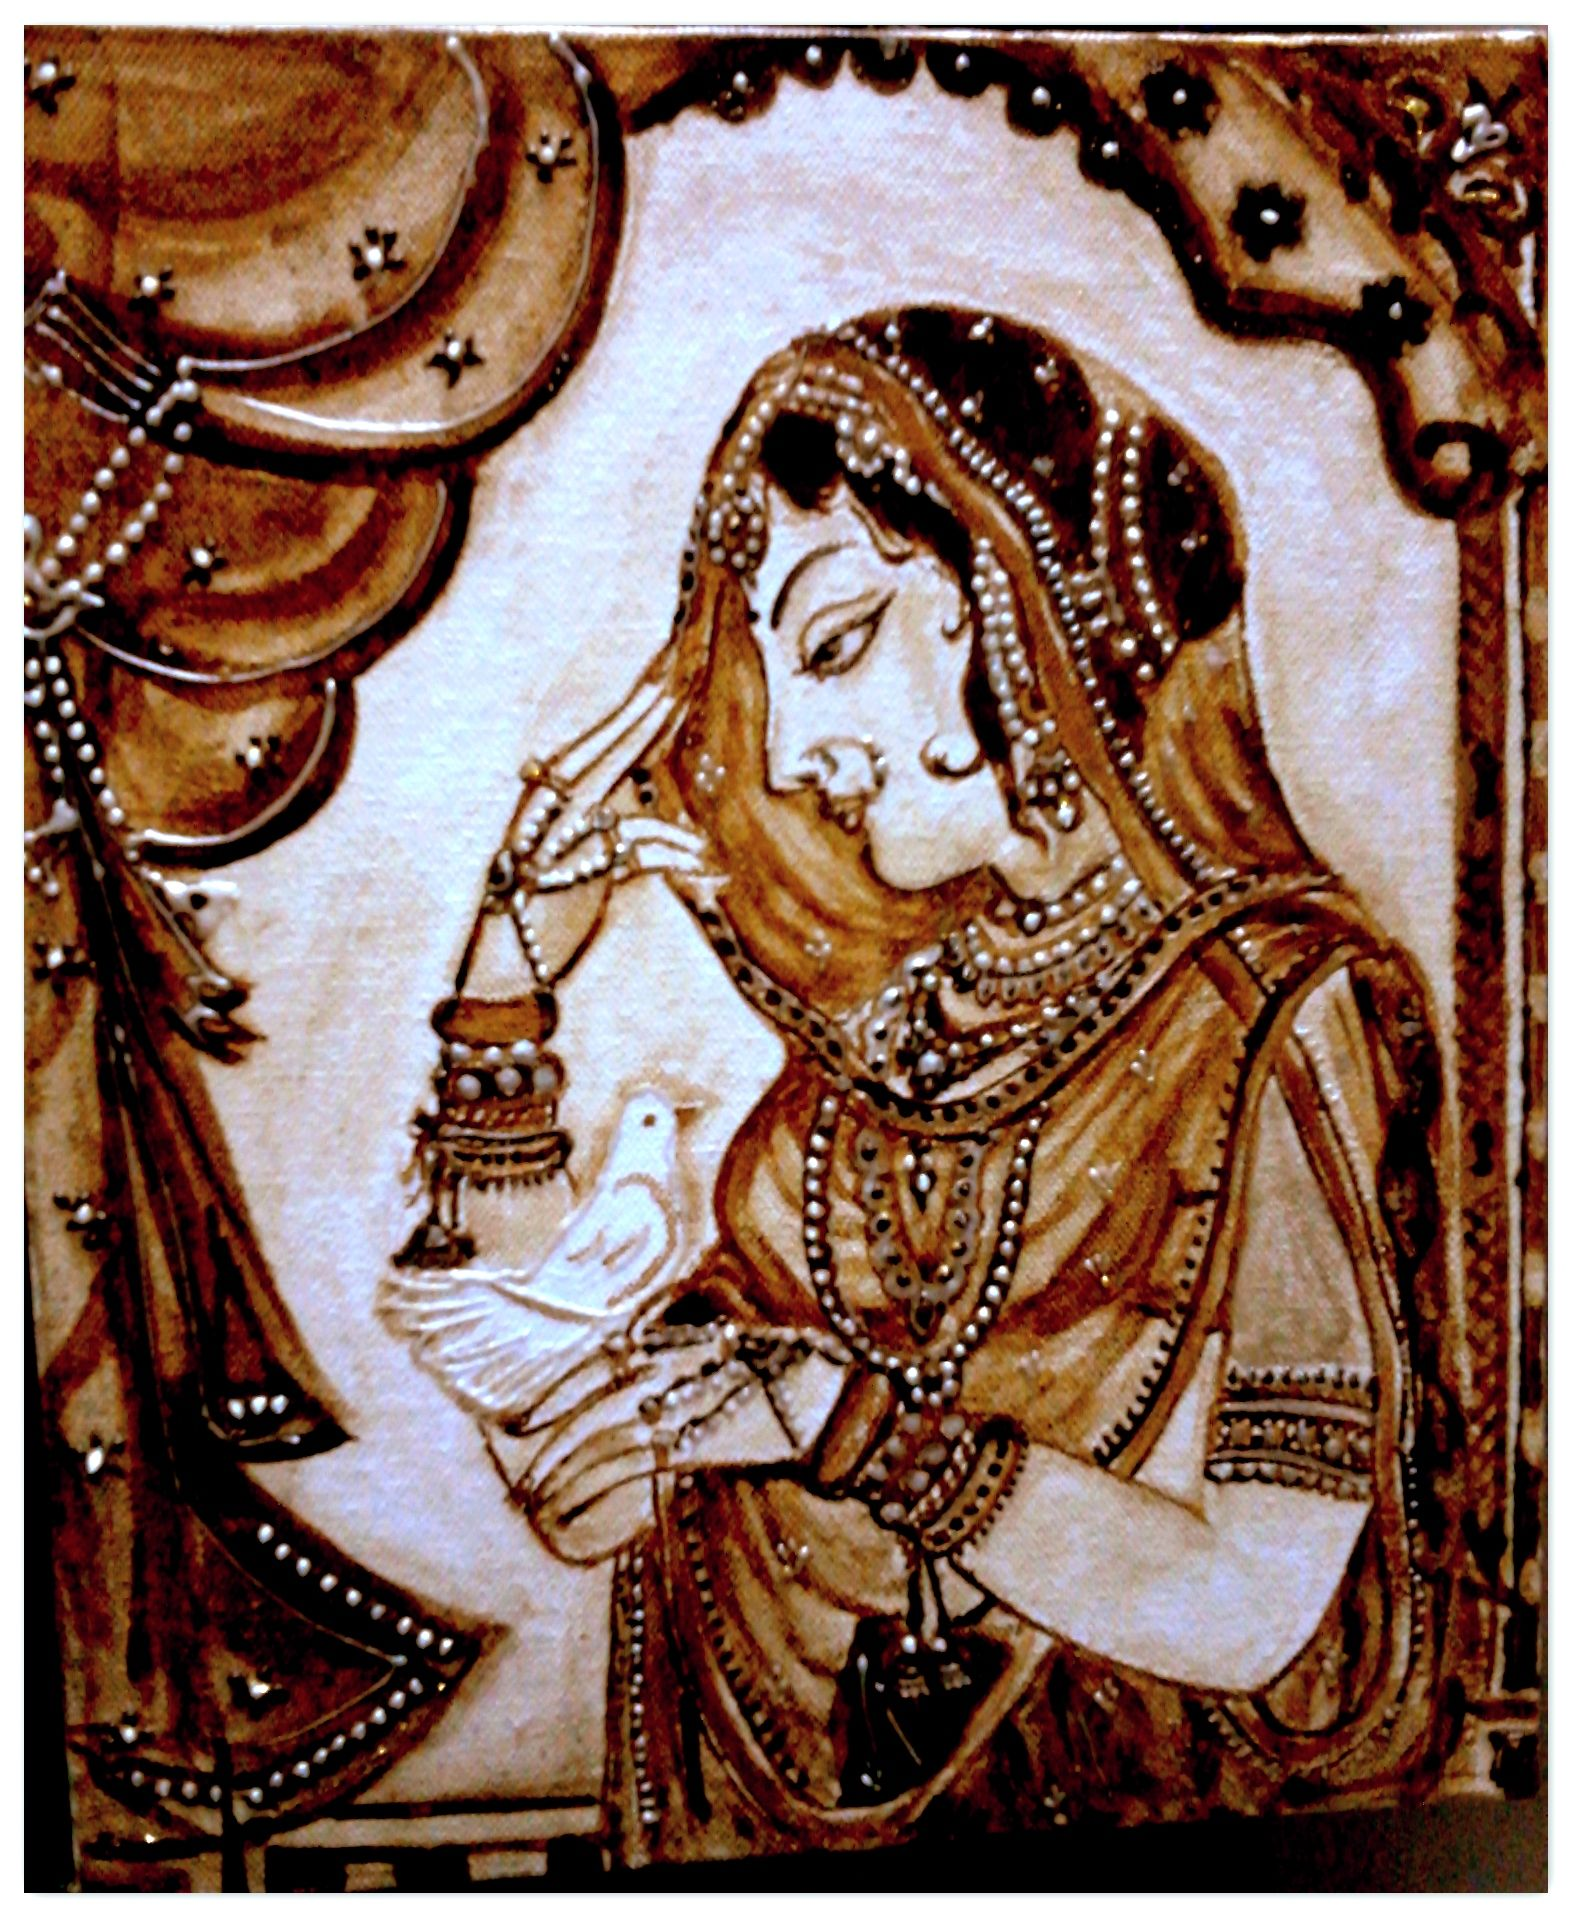 rajput lady coffee painting pinterest best coffee